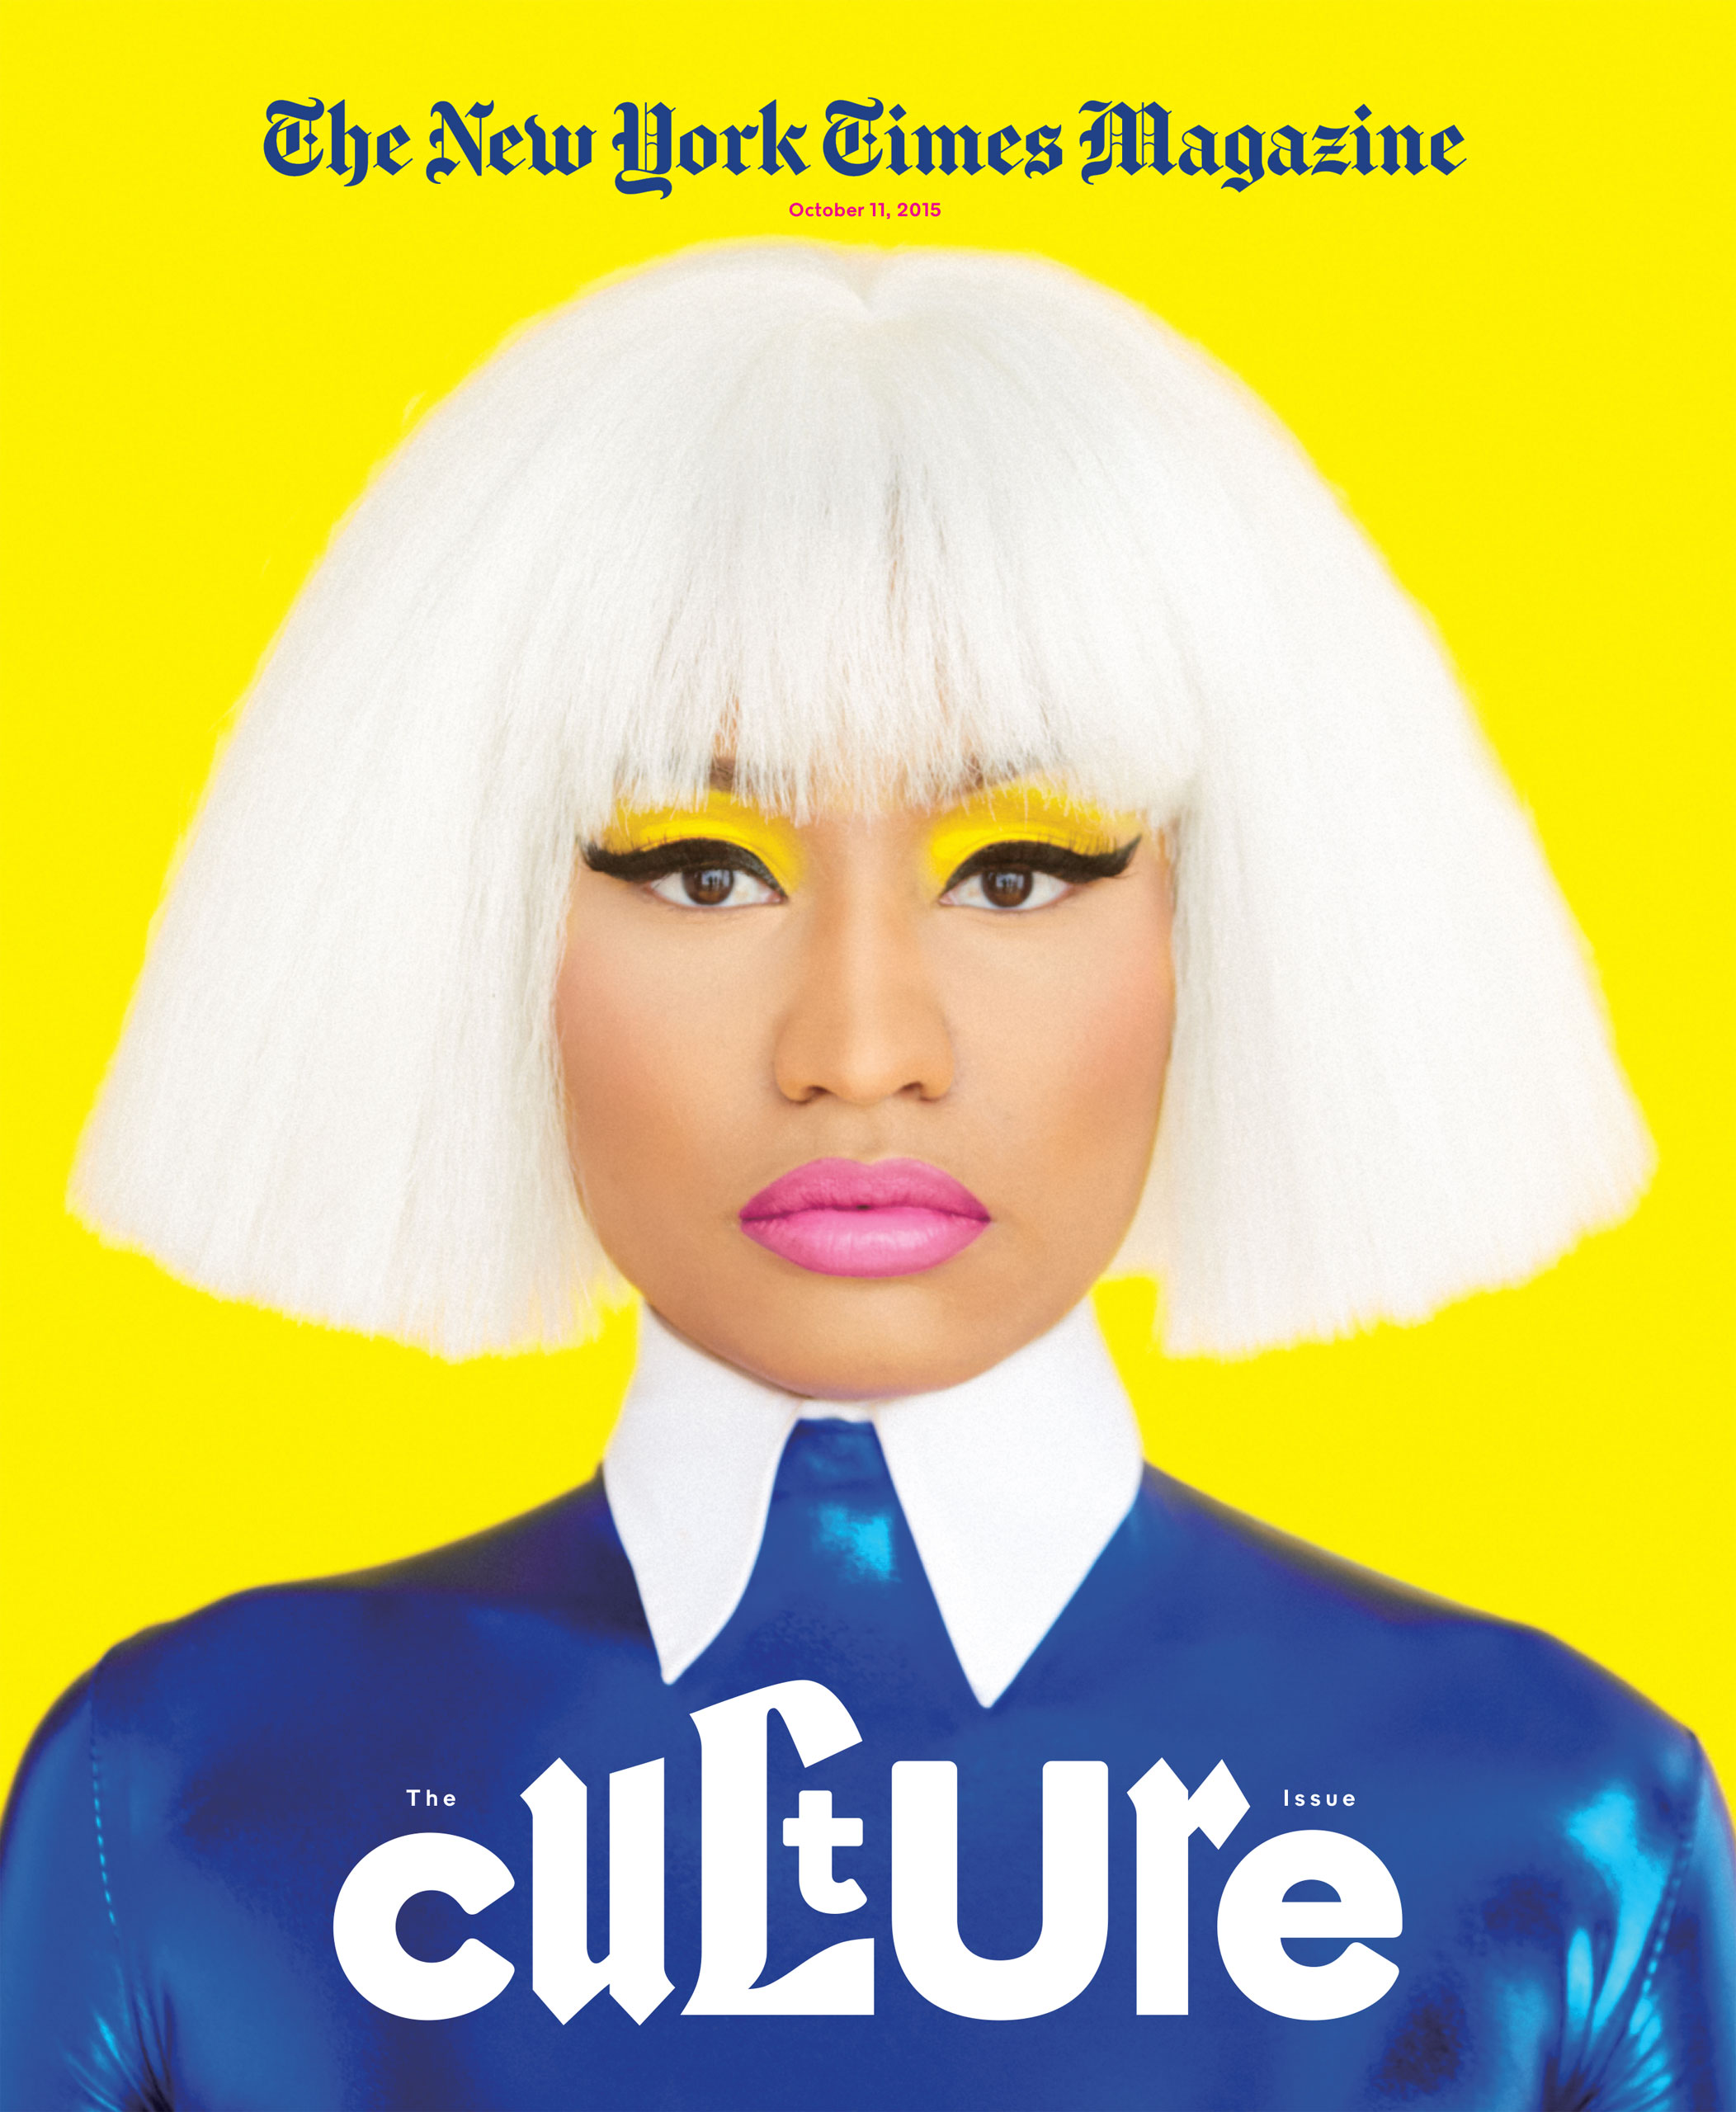 The New York Times Magazine, Culture, October 11, 2015.  Photograph by Erik Madigan Heck                                                              We commissioned Erik Madigan Heck to create this cover portrait of Nicki Minaj for our Culture Issue.  We wanted an elegant, somewhat stylized, mask-like portrait, to illustrate the themes of identity and self-reinvention that are explored in the issue. Heck's bright, colorful palette and strong graphic sensibility give this portrait of Minaj an iconic, beautiful presence.                               —Kathy Ryan, Director of Photography The New York Times Magazine                                                              I have always been interested in nudging photography into the realm of illustration. With Nicki, I wanted to showcase her in a Warholian way, as this character who we all know in an iconic, flat, illustrative manner.                                                              —Erik Madigan Heck, Photographer